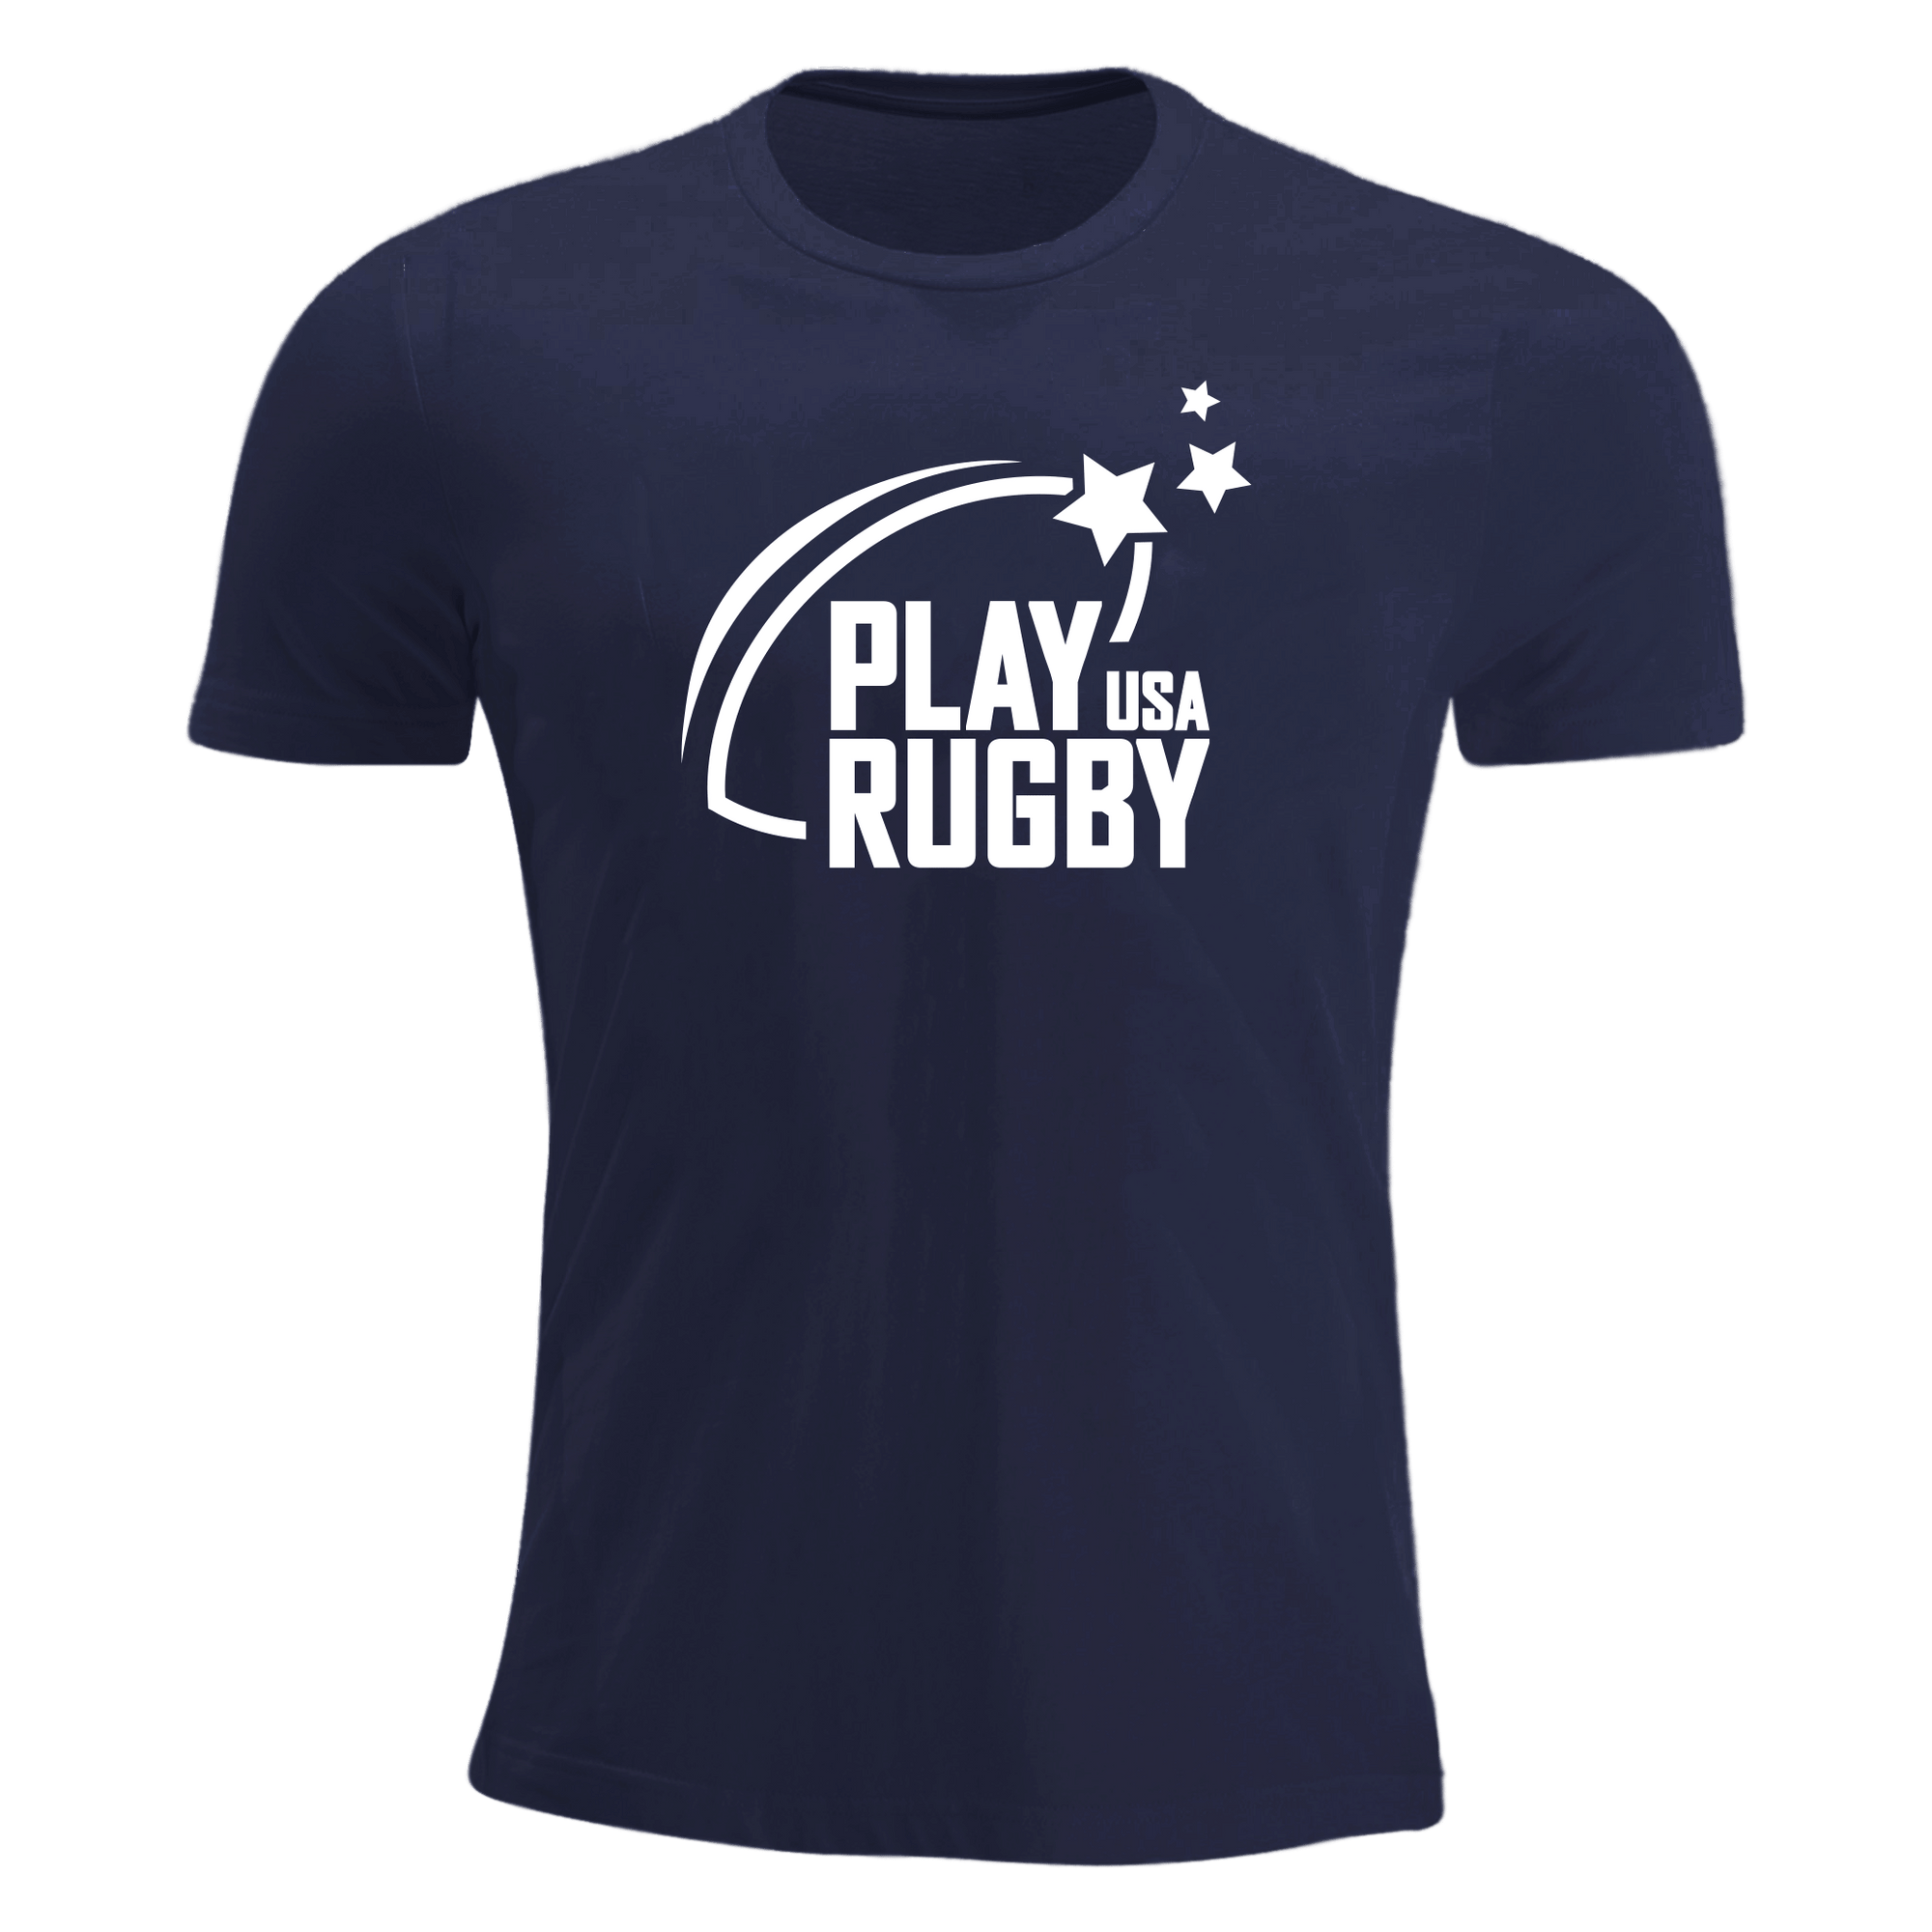 Play Rugby USA Premiership T-Shirt Navy